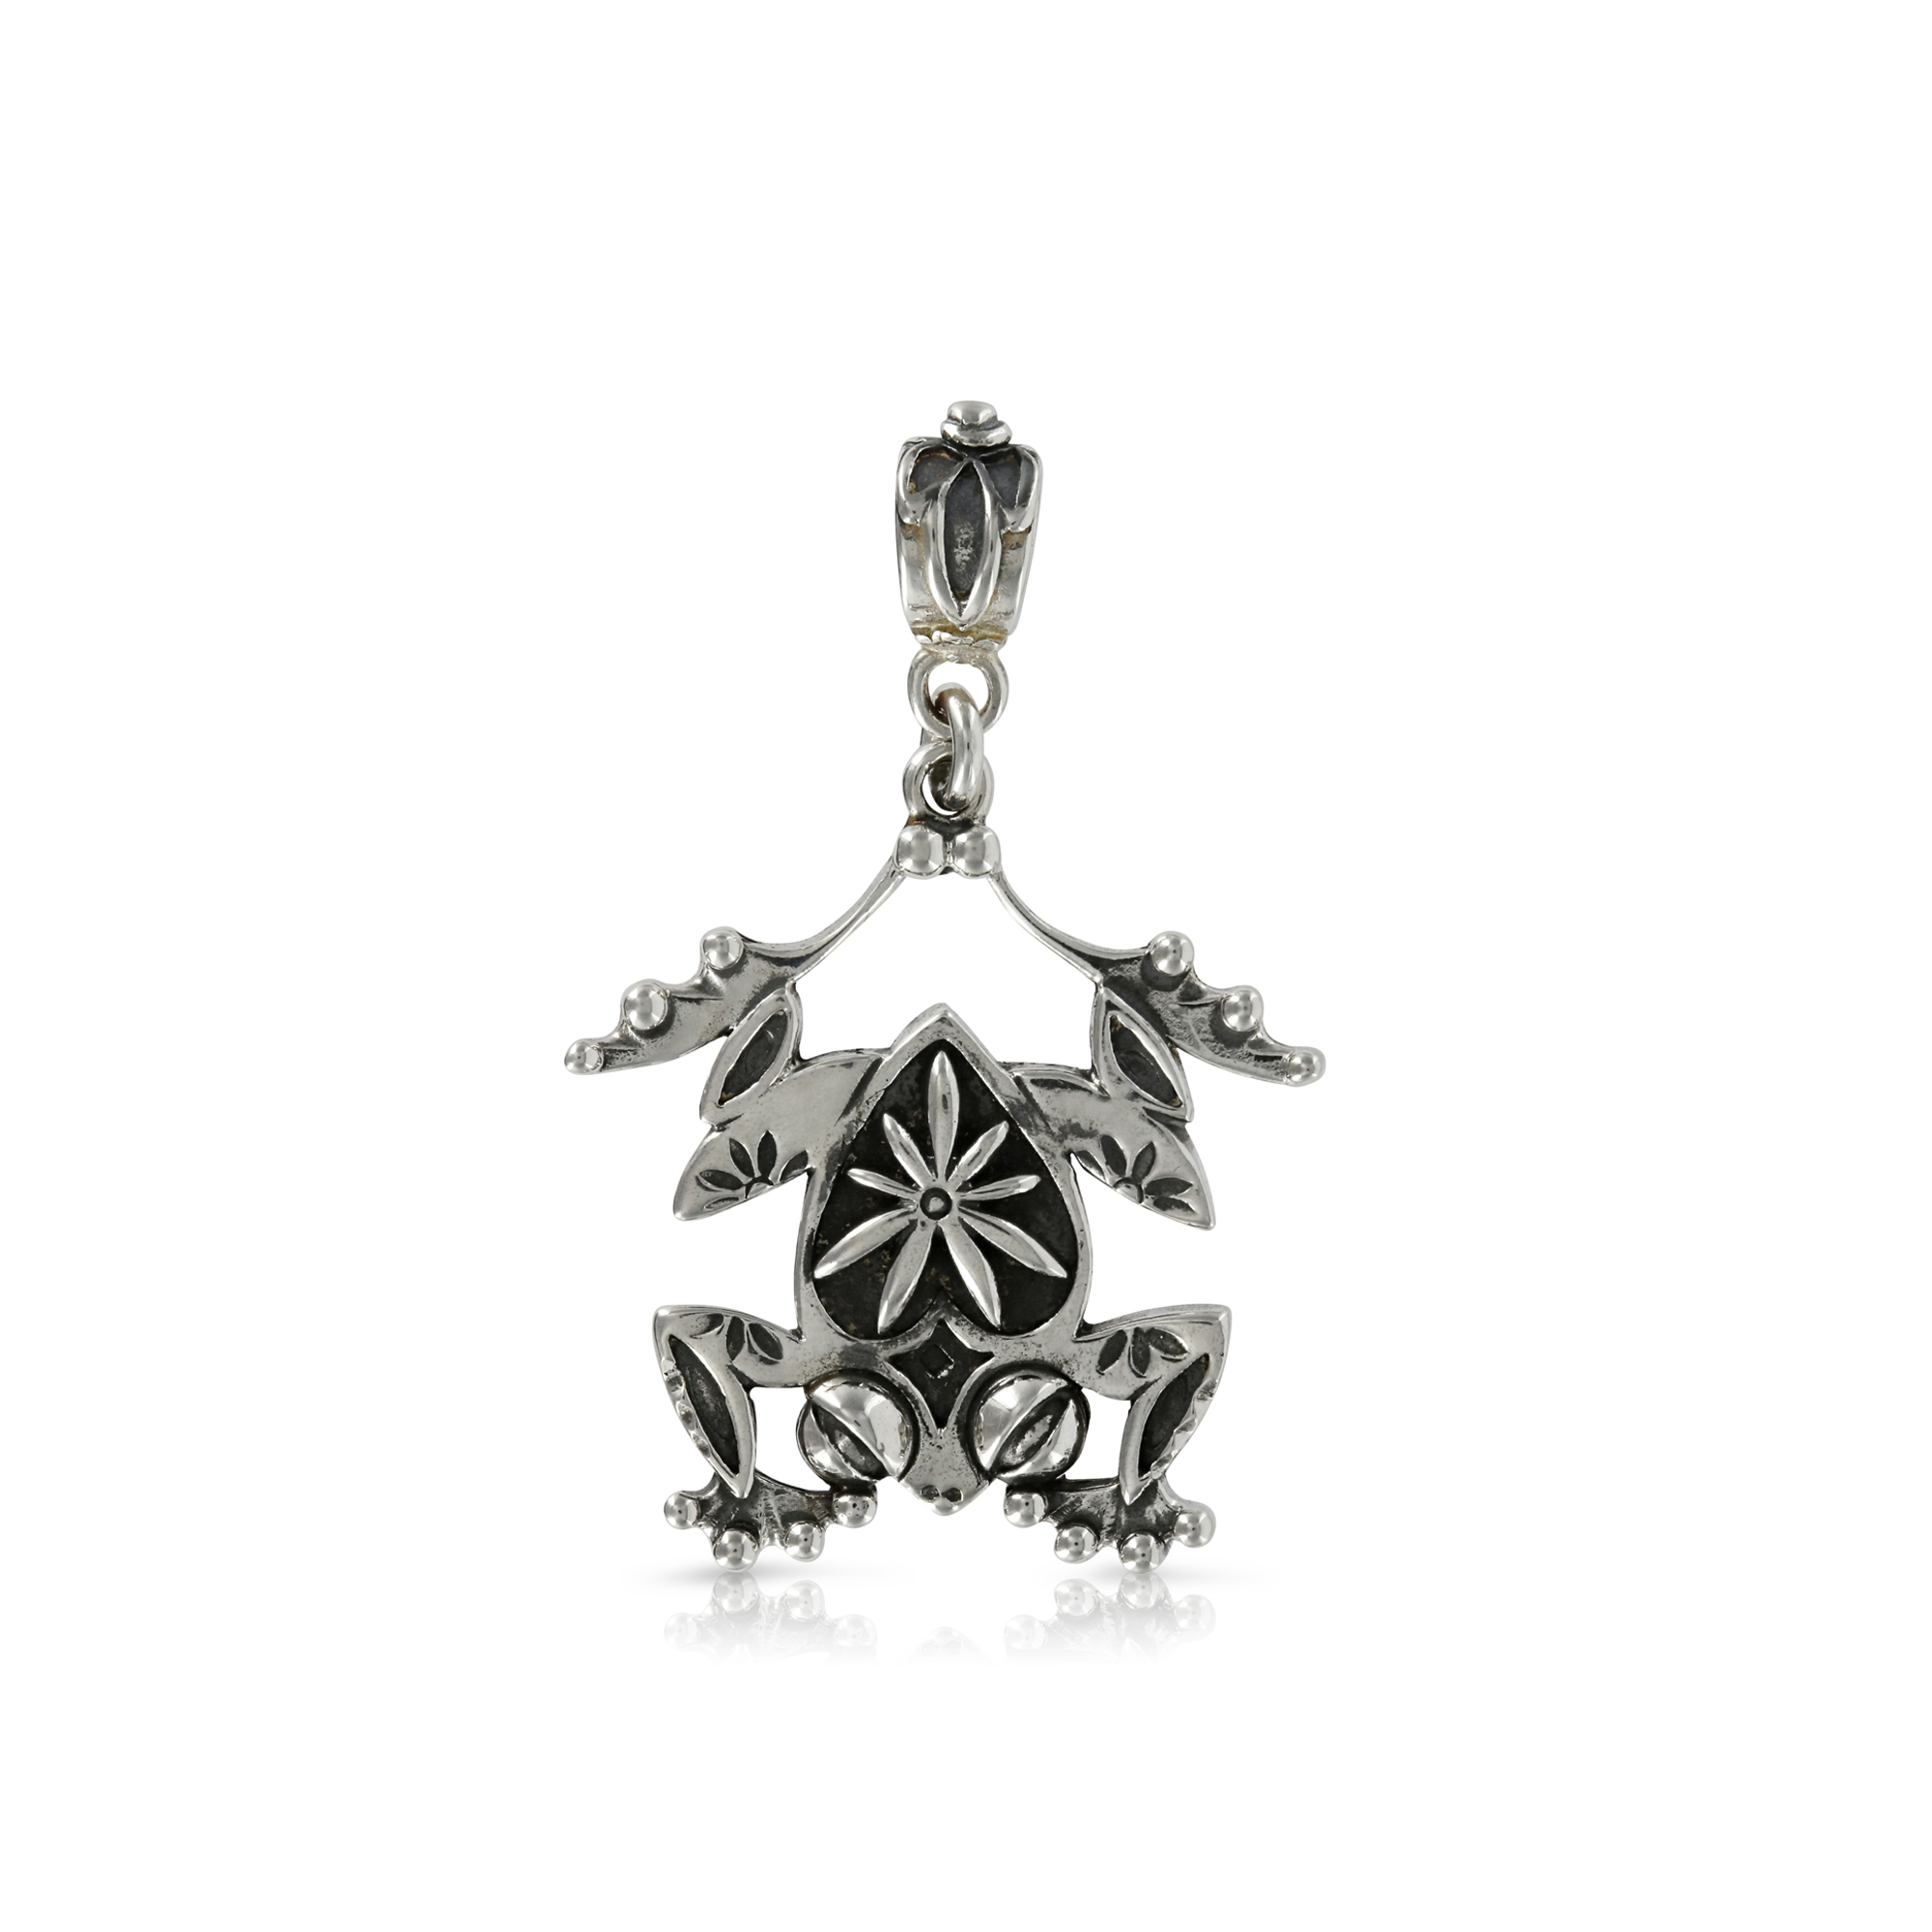 frog pendant shop jewellery details simon dionysus harrison at